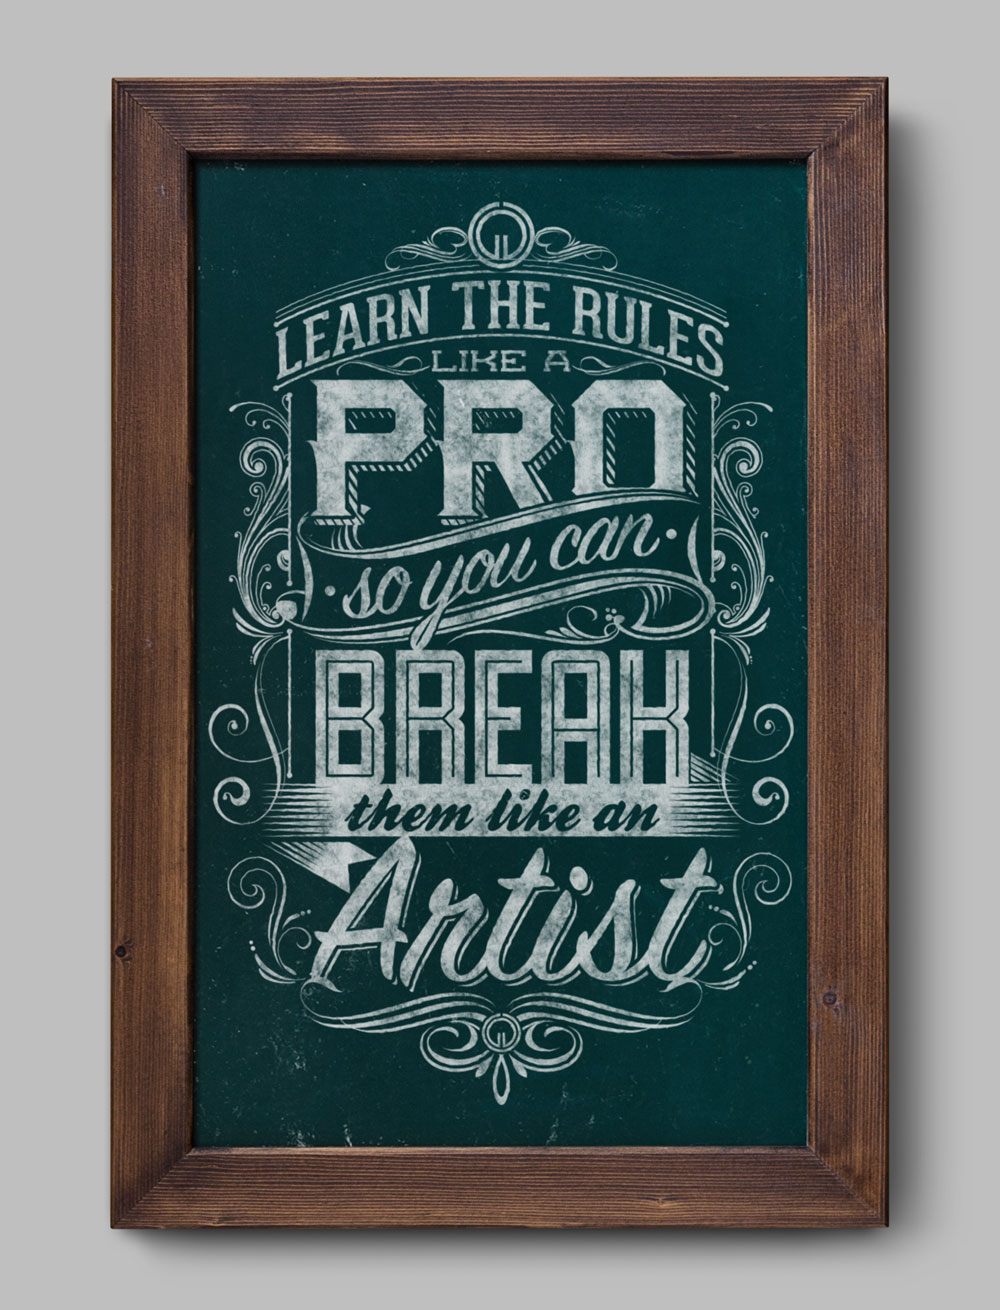 Learn-the-rules-chalkboard-mockup